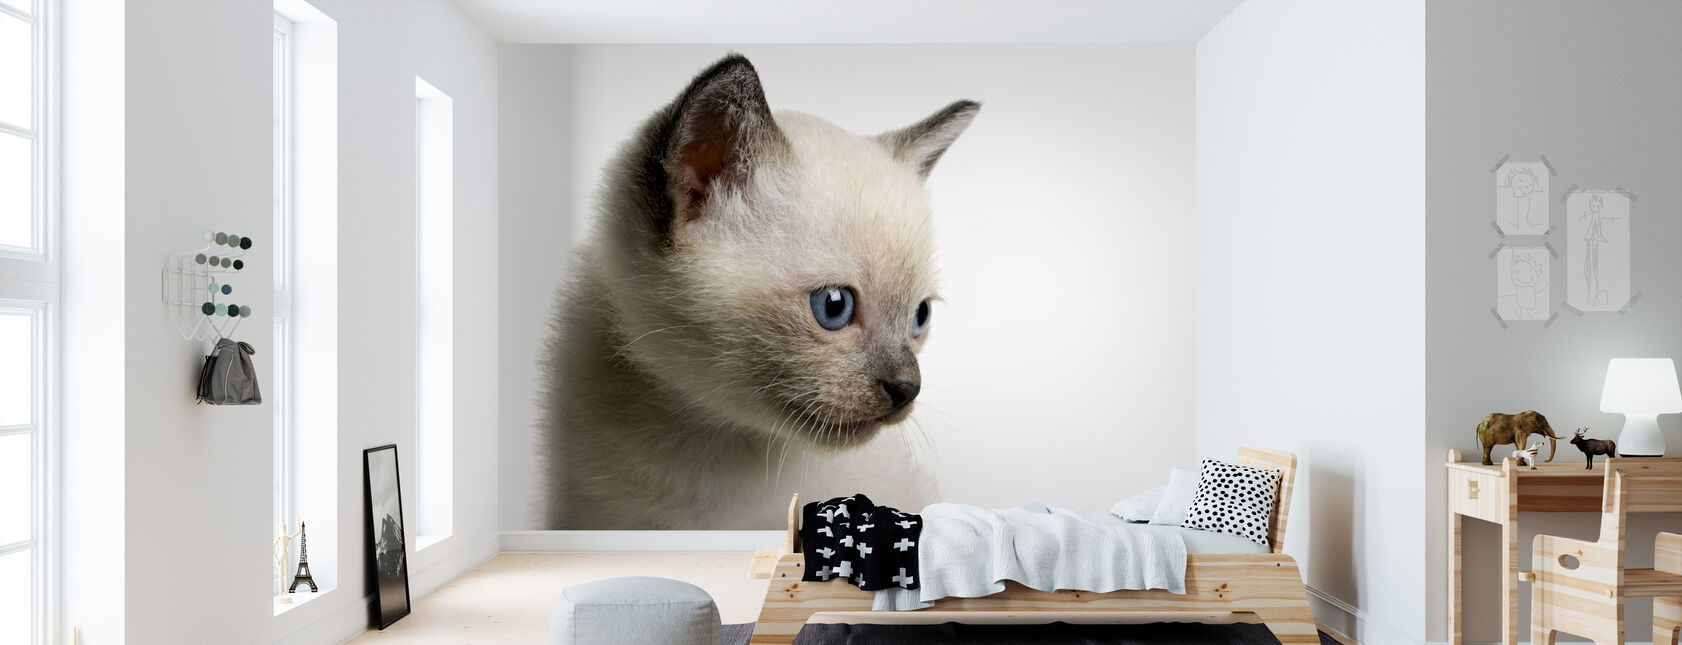 Blue Eyed Kitten - Wallpaper - Kids Room